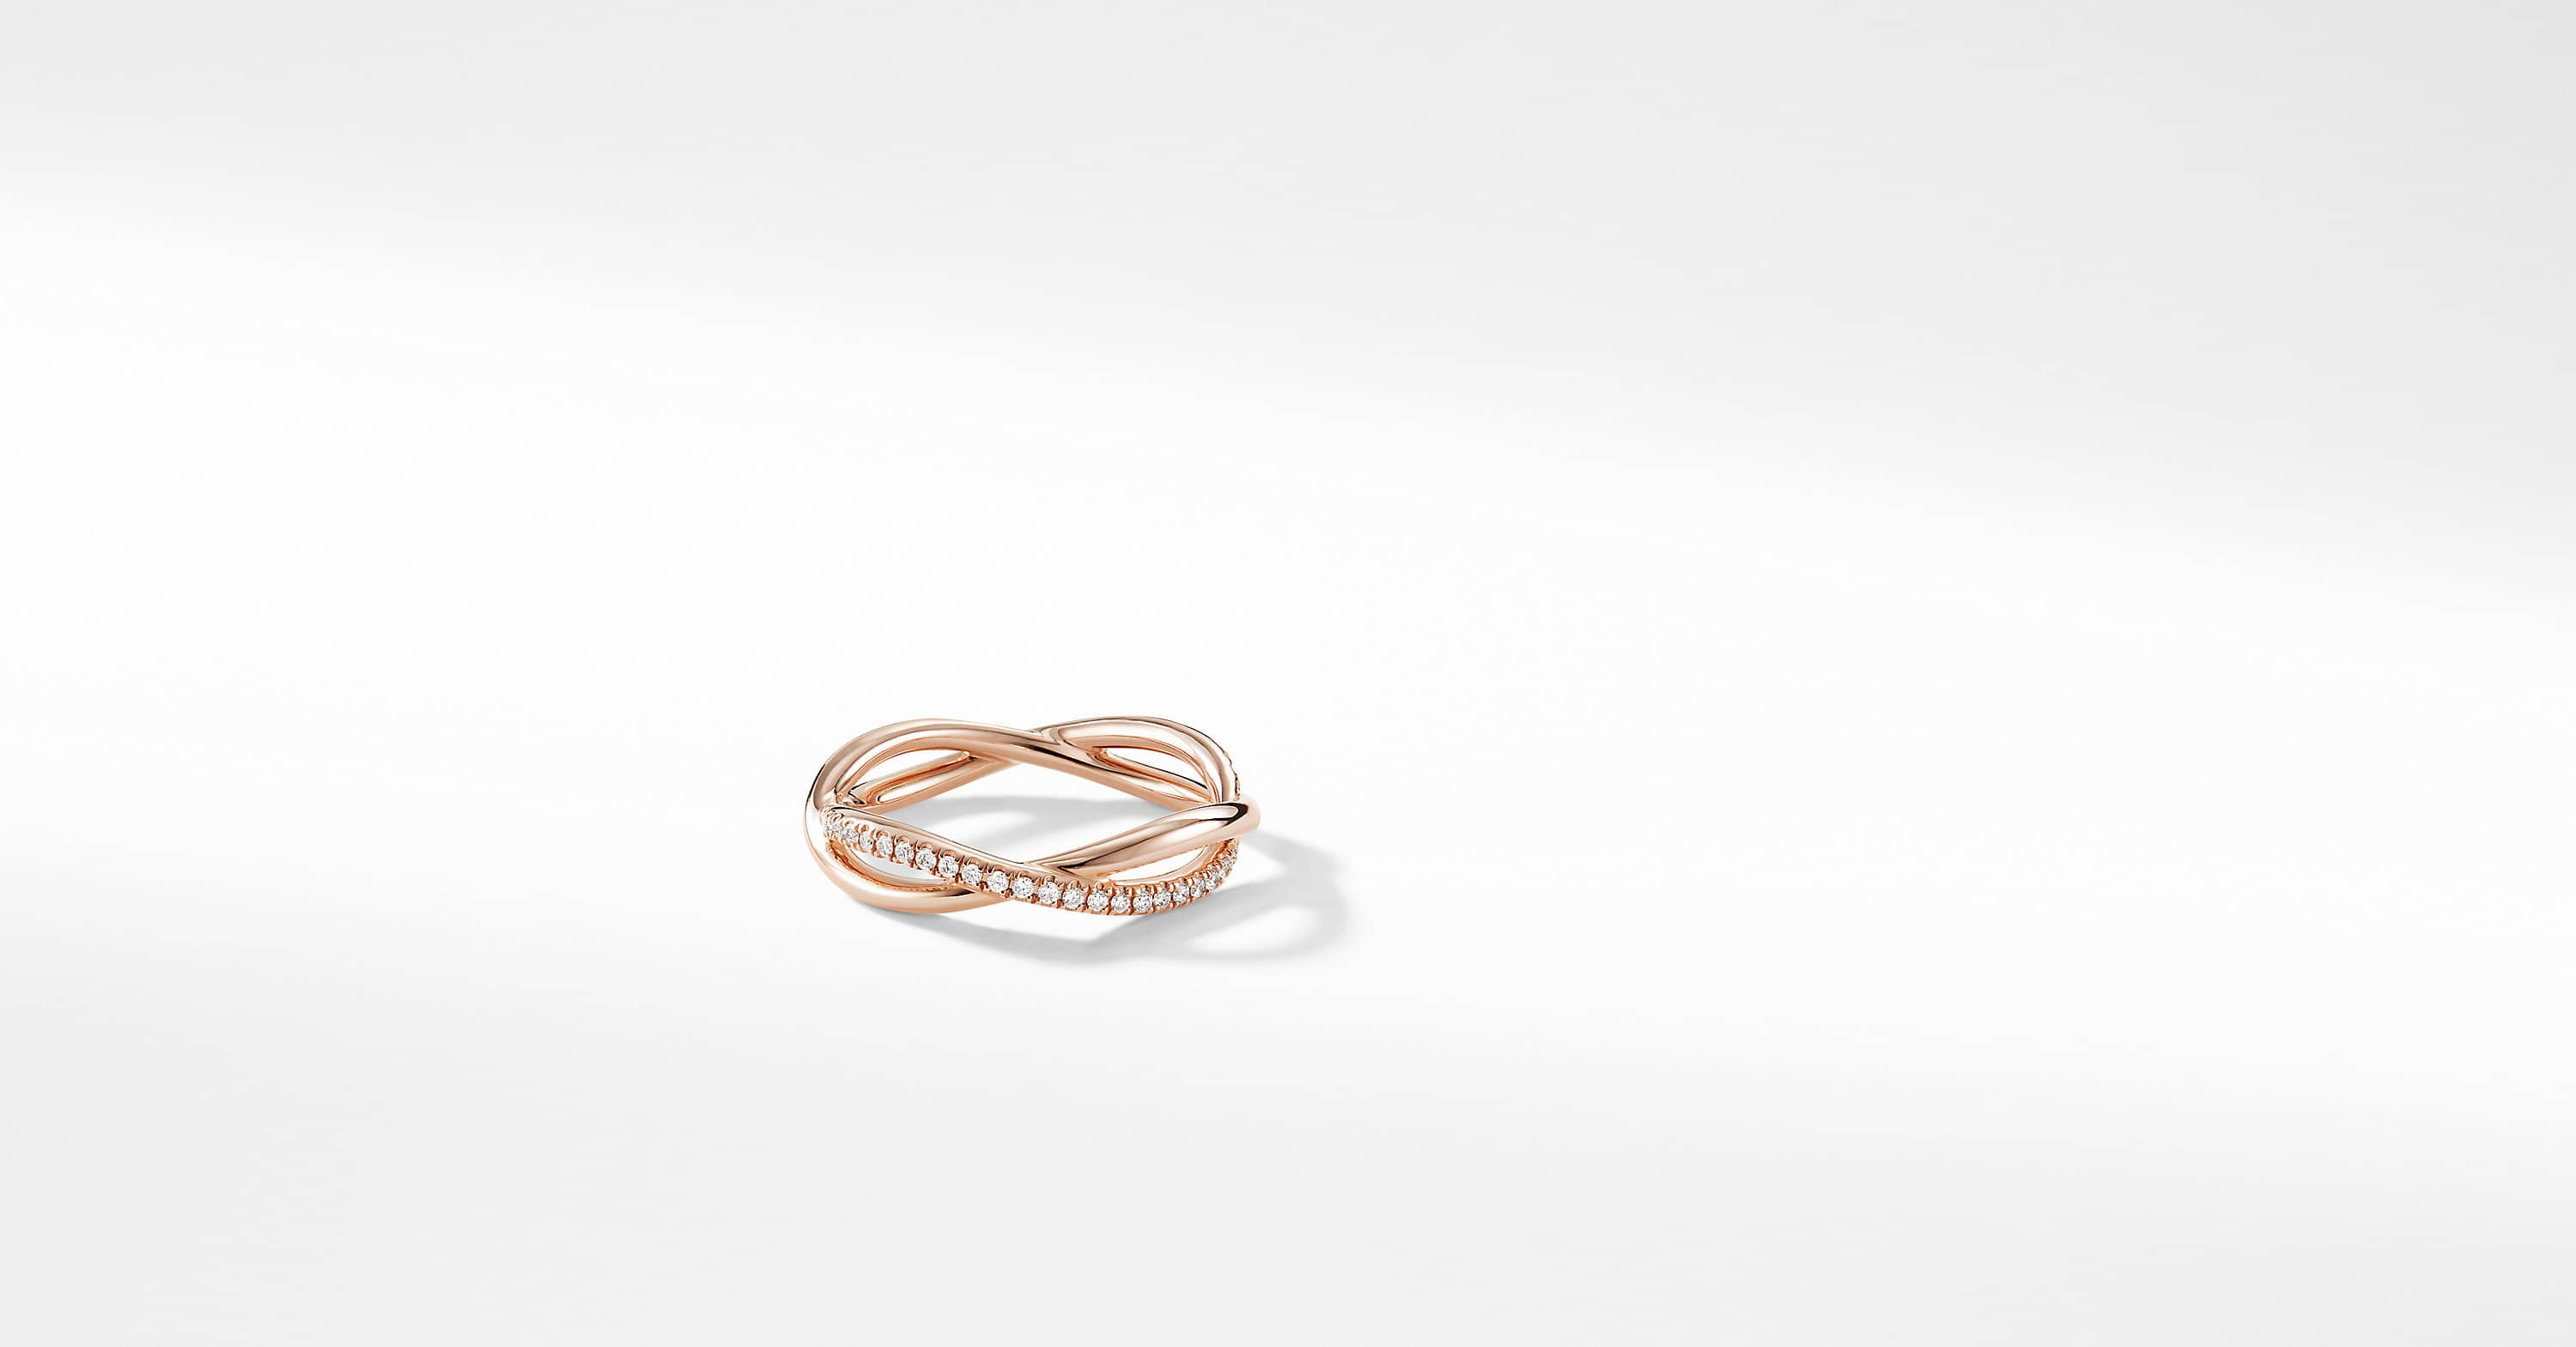 DY Lanai Pavé Wedding Band with Diamonds in 18K Rose Gold